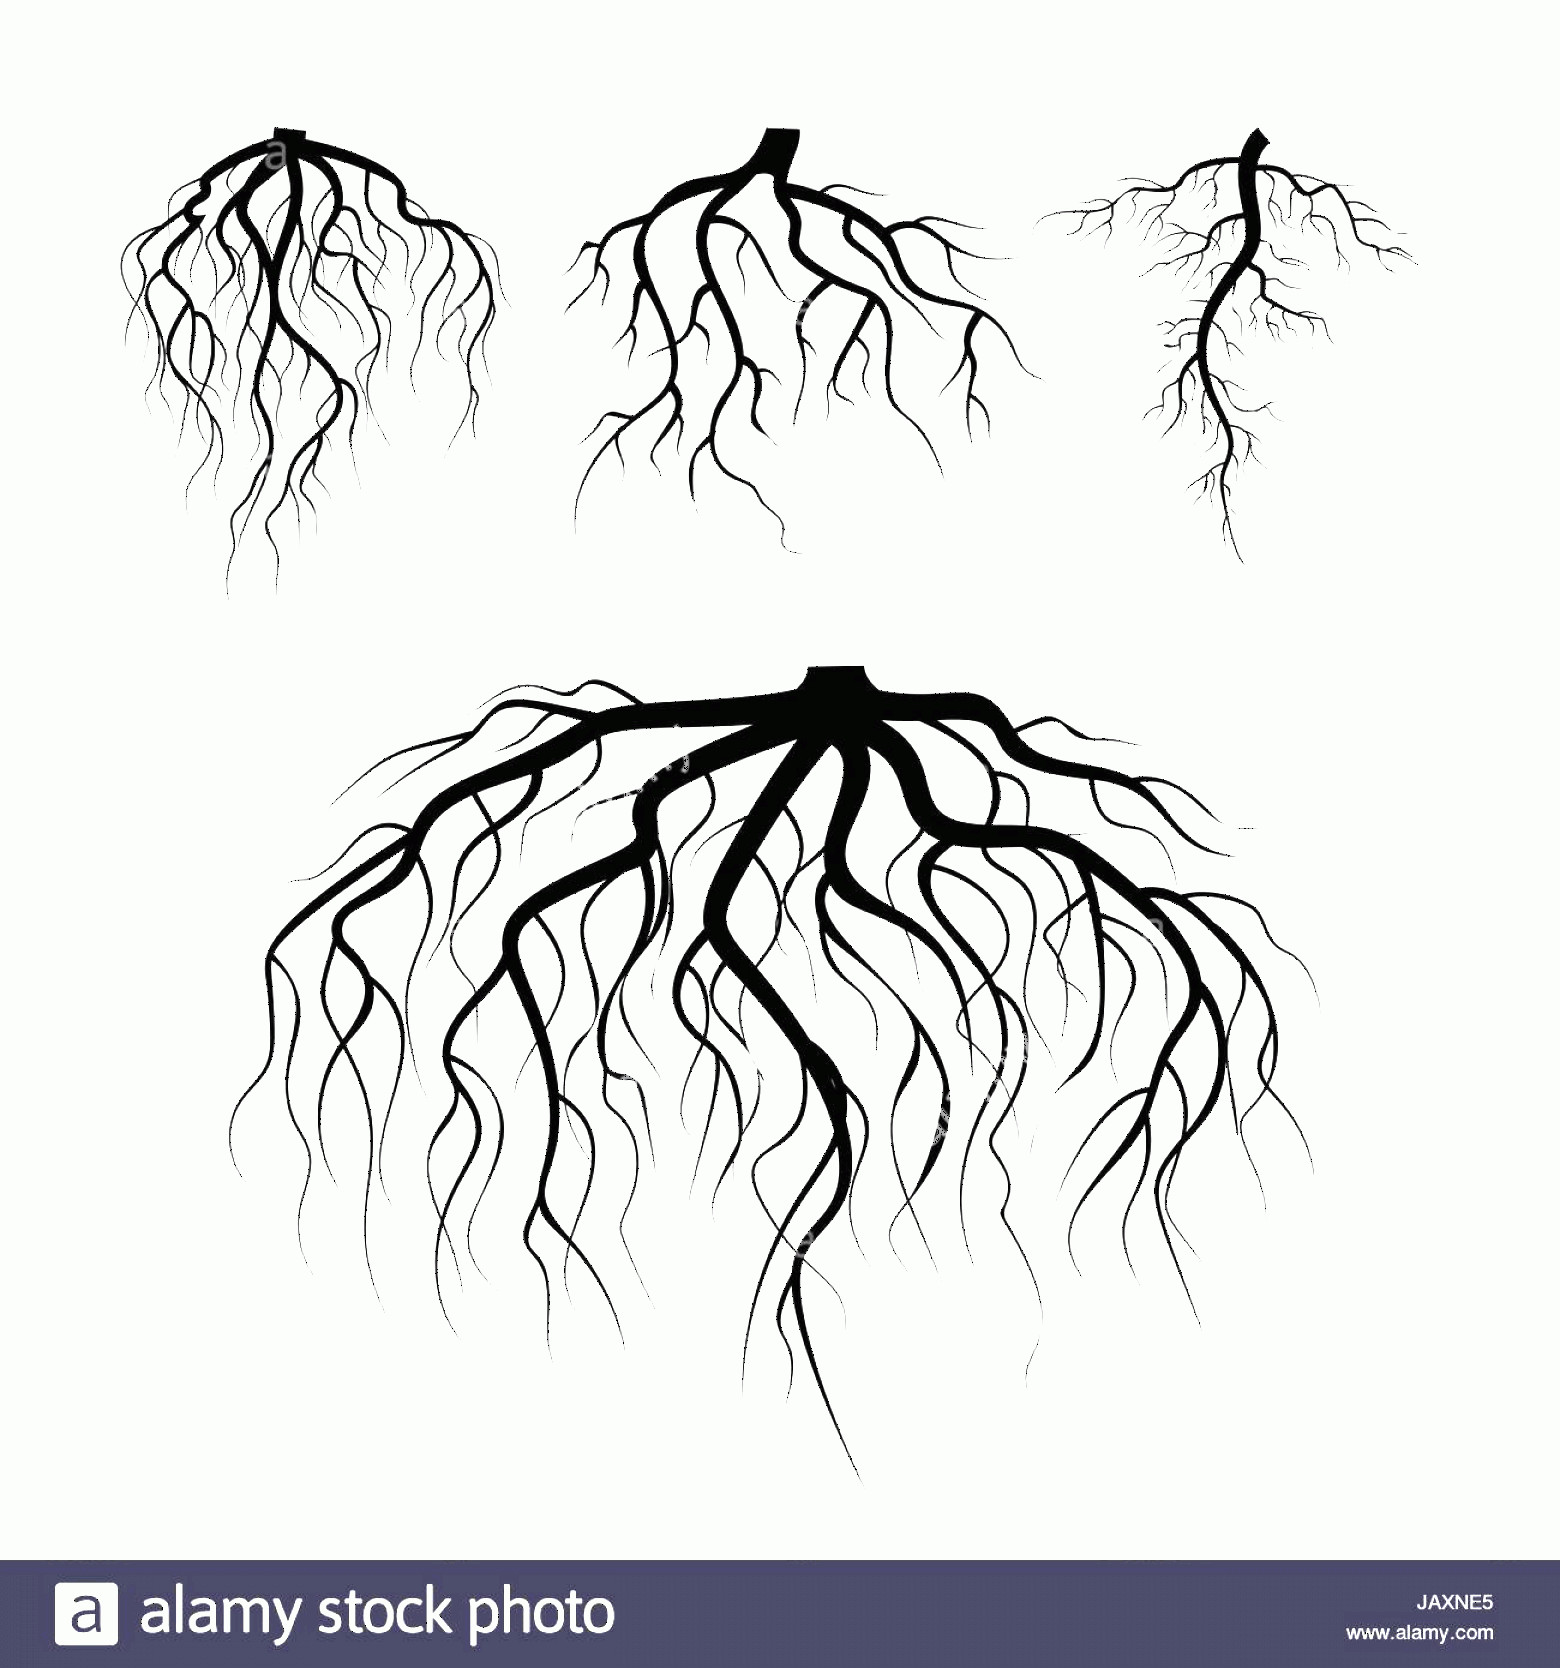 Vector Tree With Roots Drawing: Stock Photo Tree Underground Roots Vector Set Illustration Isolated